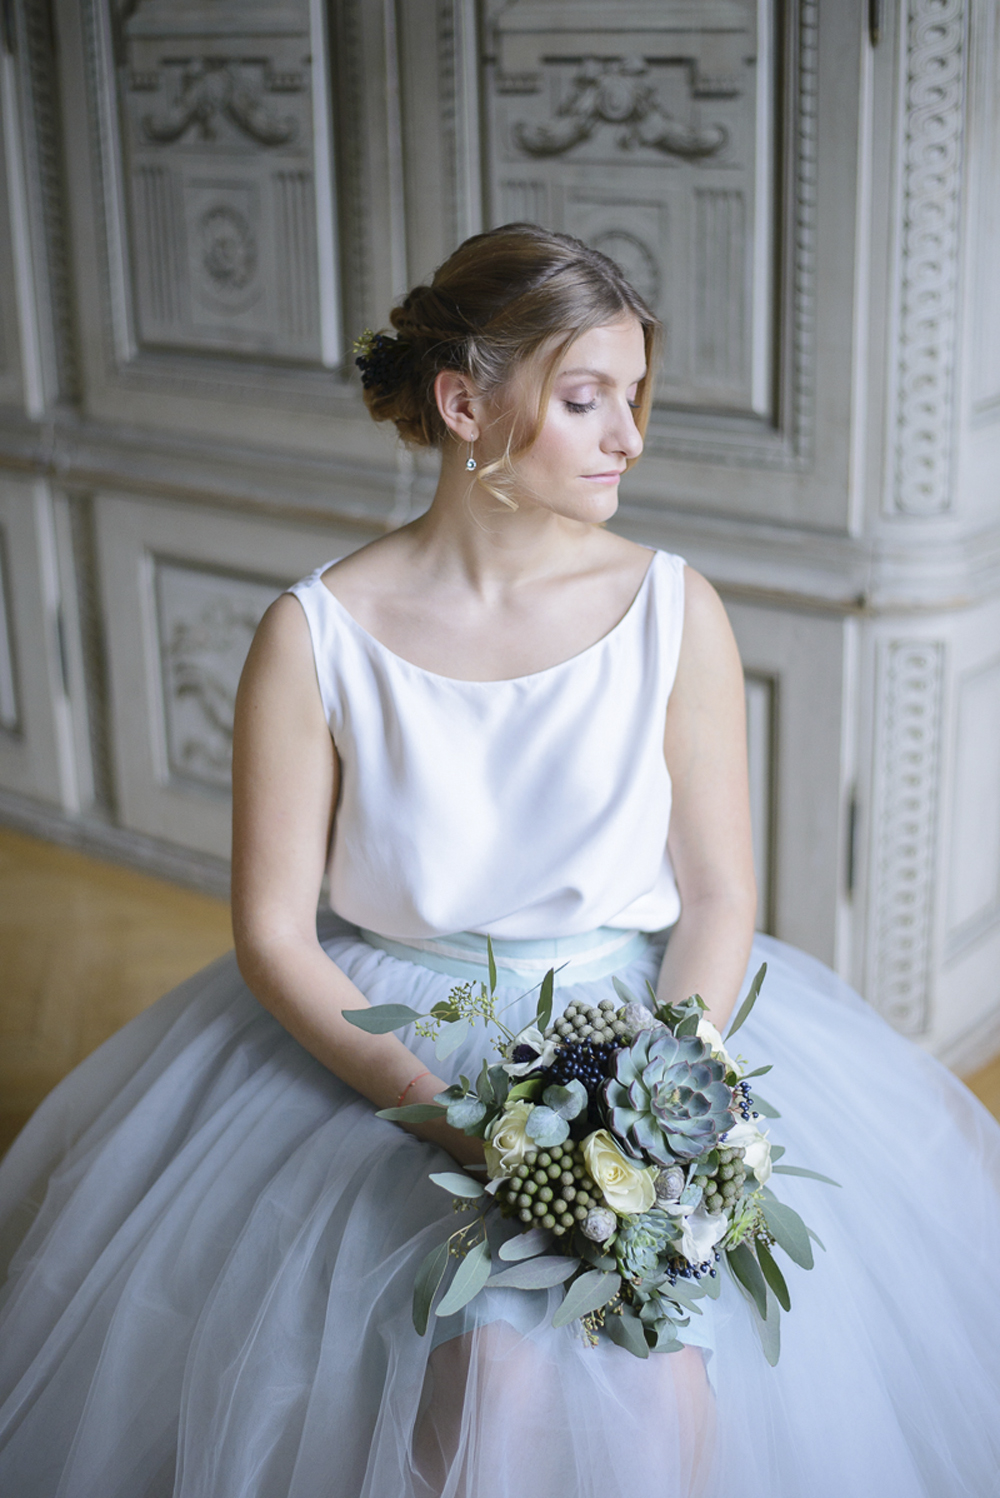 Bride with baby blue tulle skirt and succulent bridal bouquet at Schloss Laudon Vienna Austria by Barbara Wenz Photography